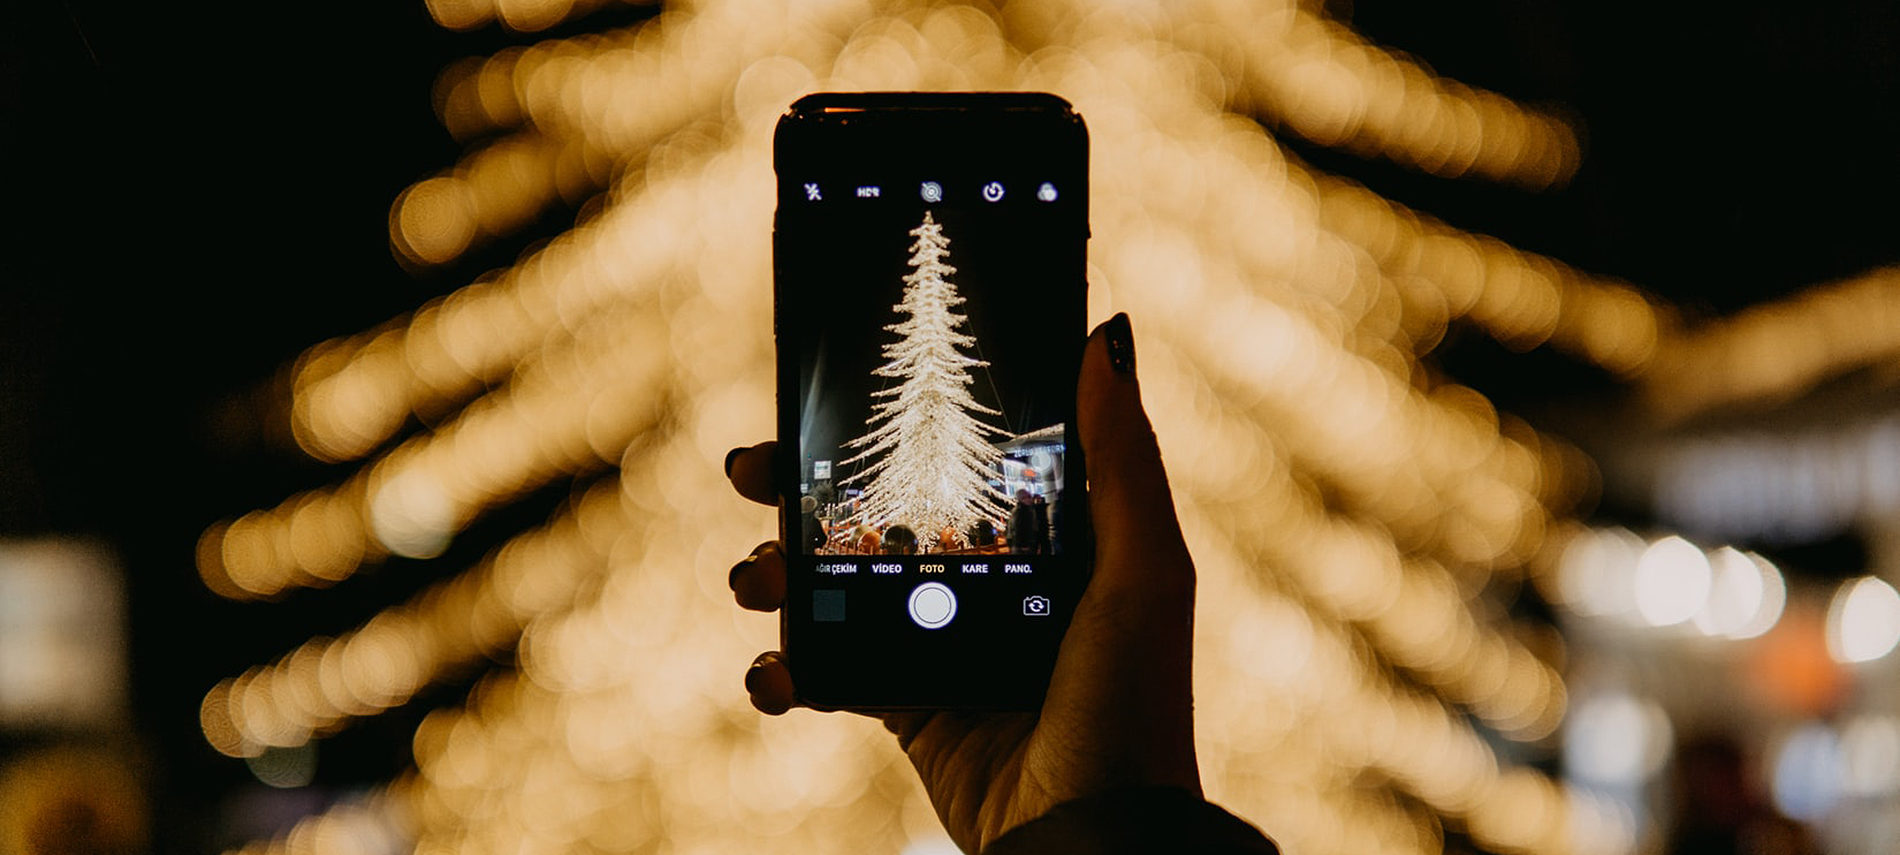 person's arm holding cell phone photographing white holiday lights in tree